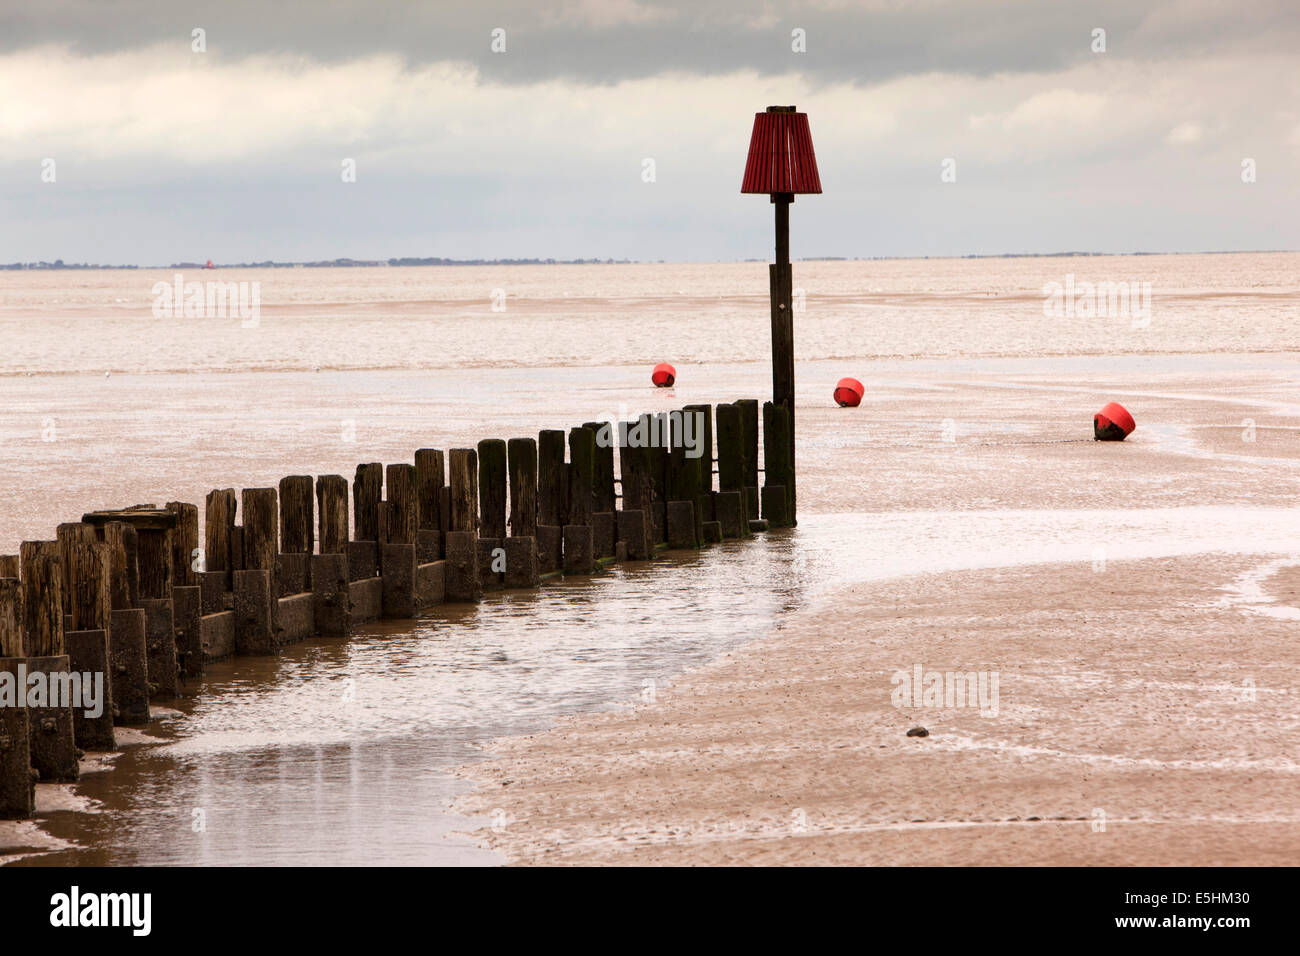 UK, England, Lincolnshire, Cleethorpes, breakwater beside pier on Humber Estuary - Stock Image